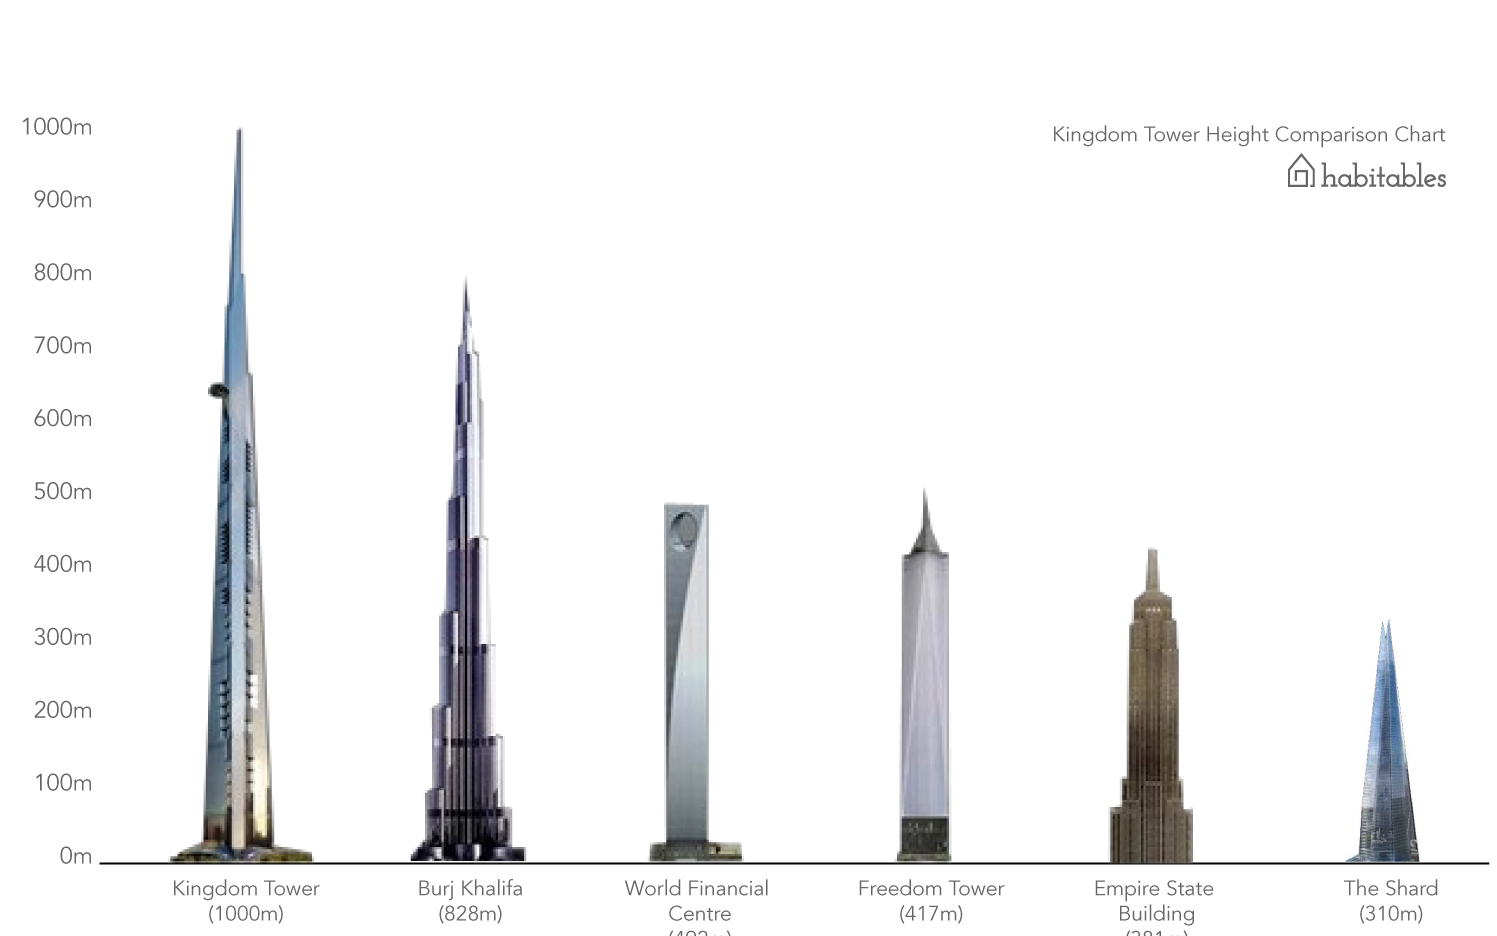 Top 5 Tallest Buildings in The